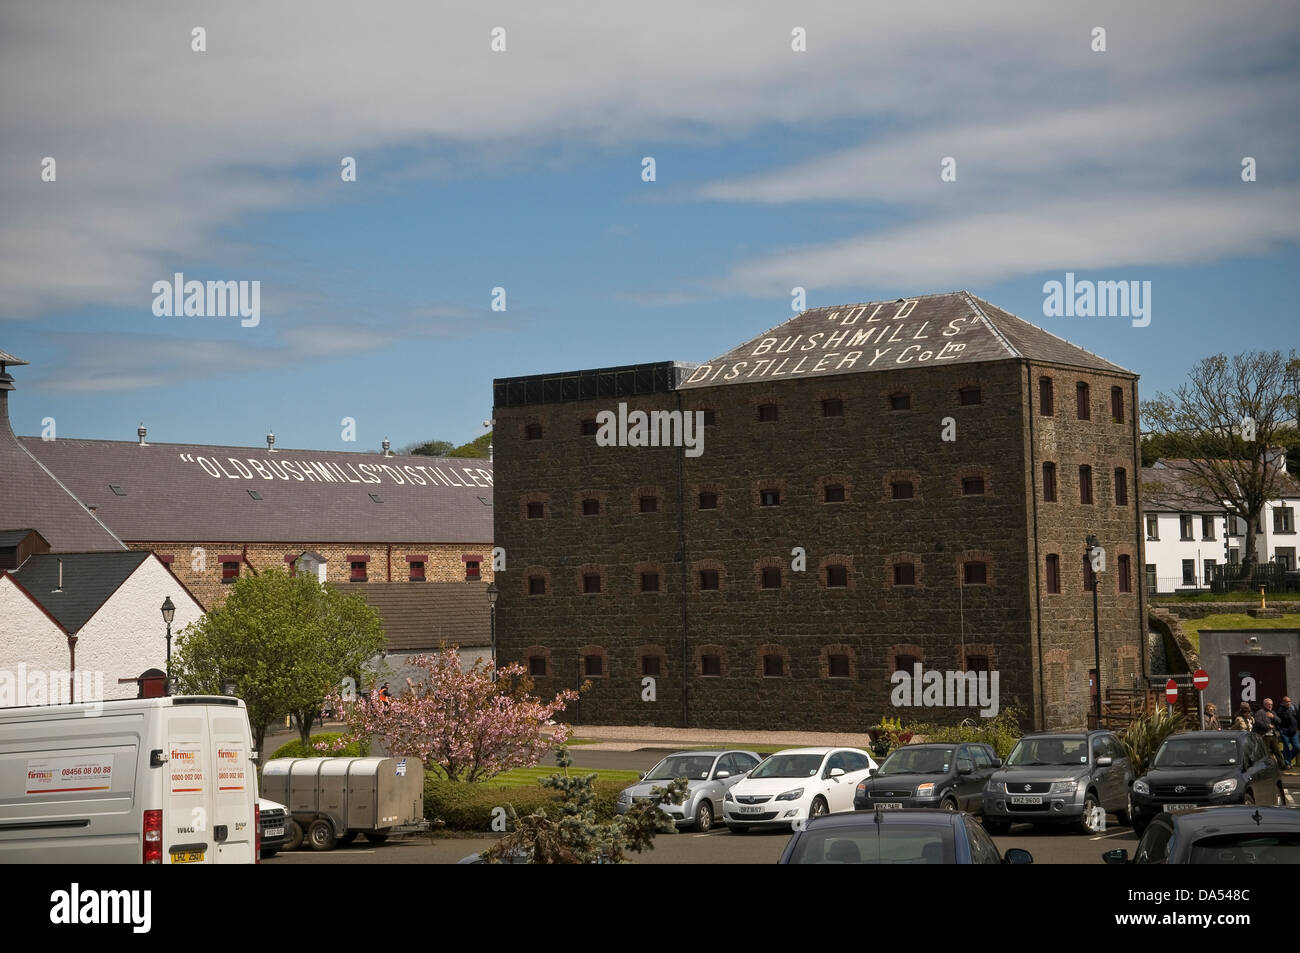 Bushmills Irish Whiskey Distillery in County Antrim, Northern Ireland, UK - Stock Image